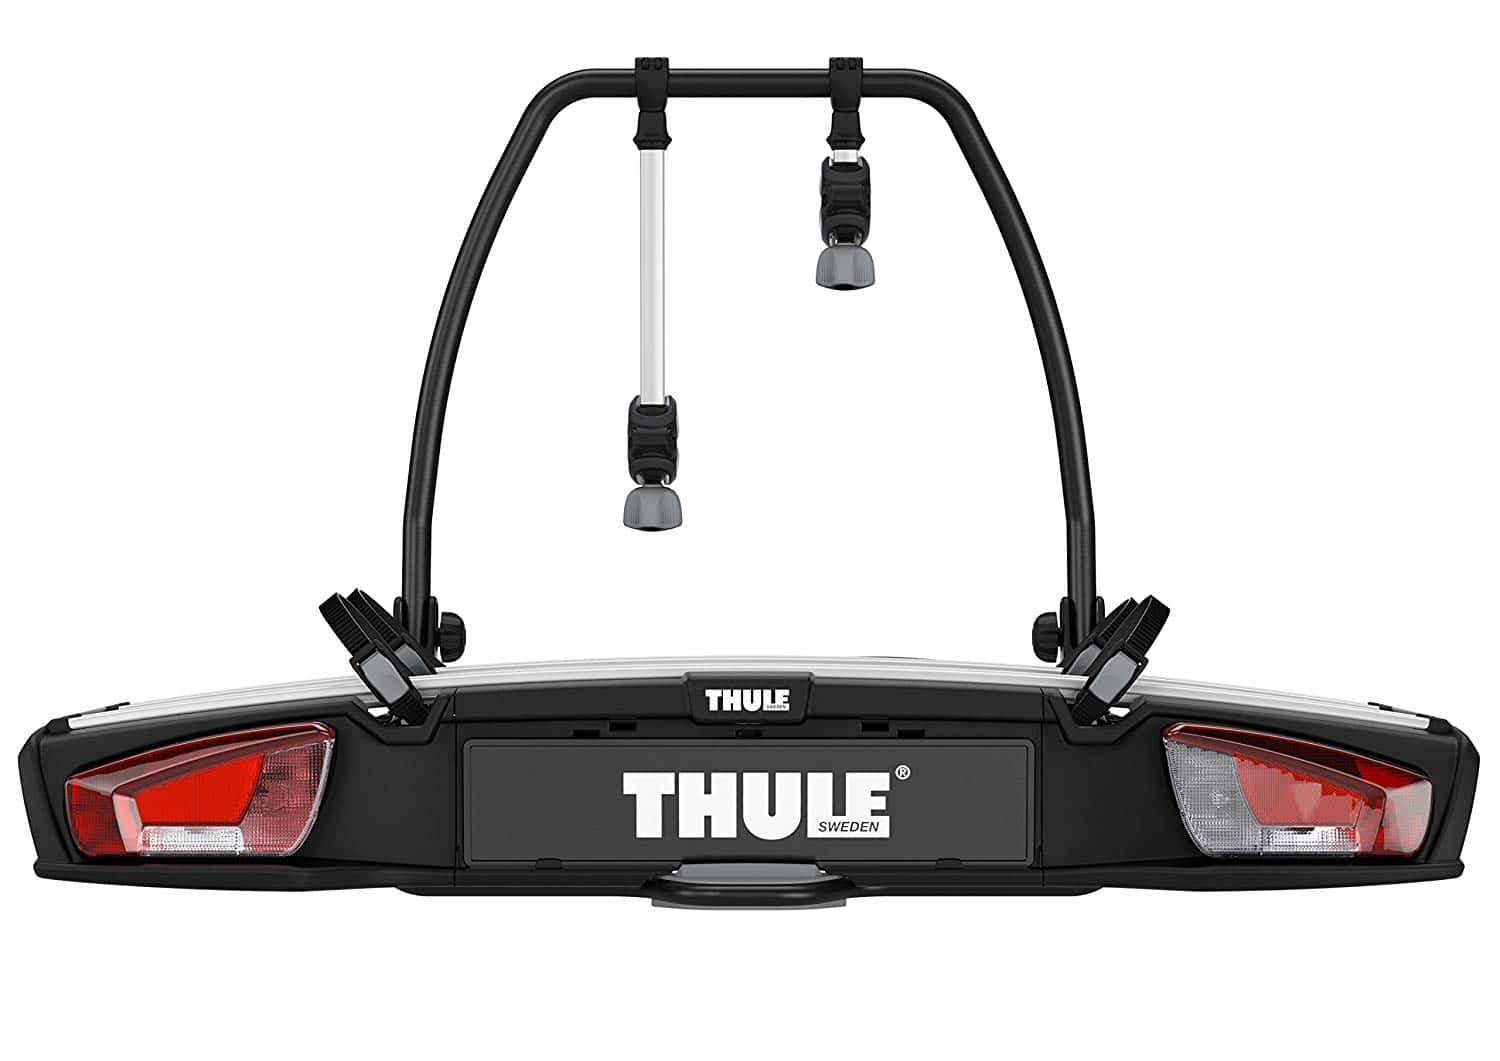 thule velospace 917 fahrradtr ger im test 2019. Black Bedroom Furniture Sets. Home Design Ideas